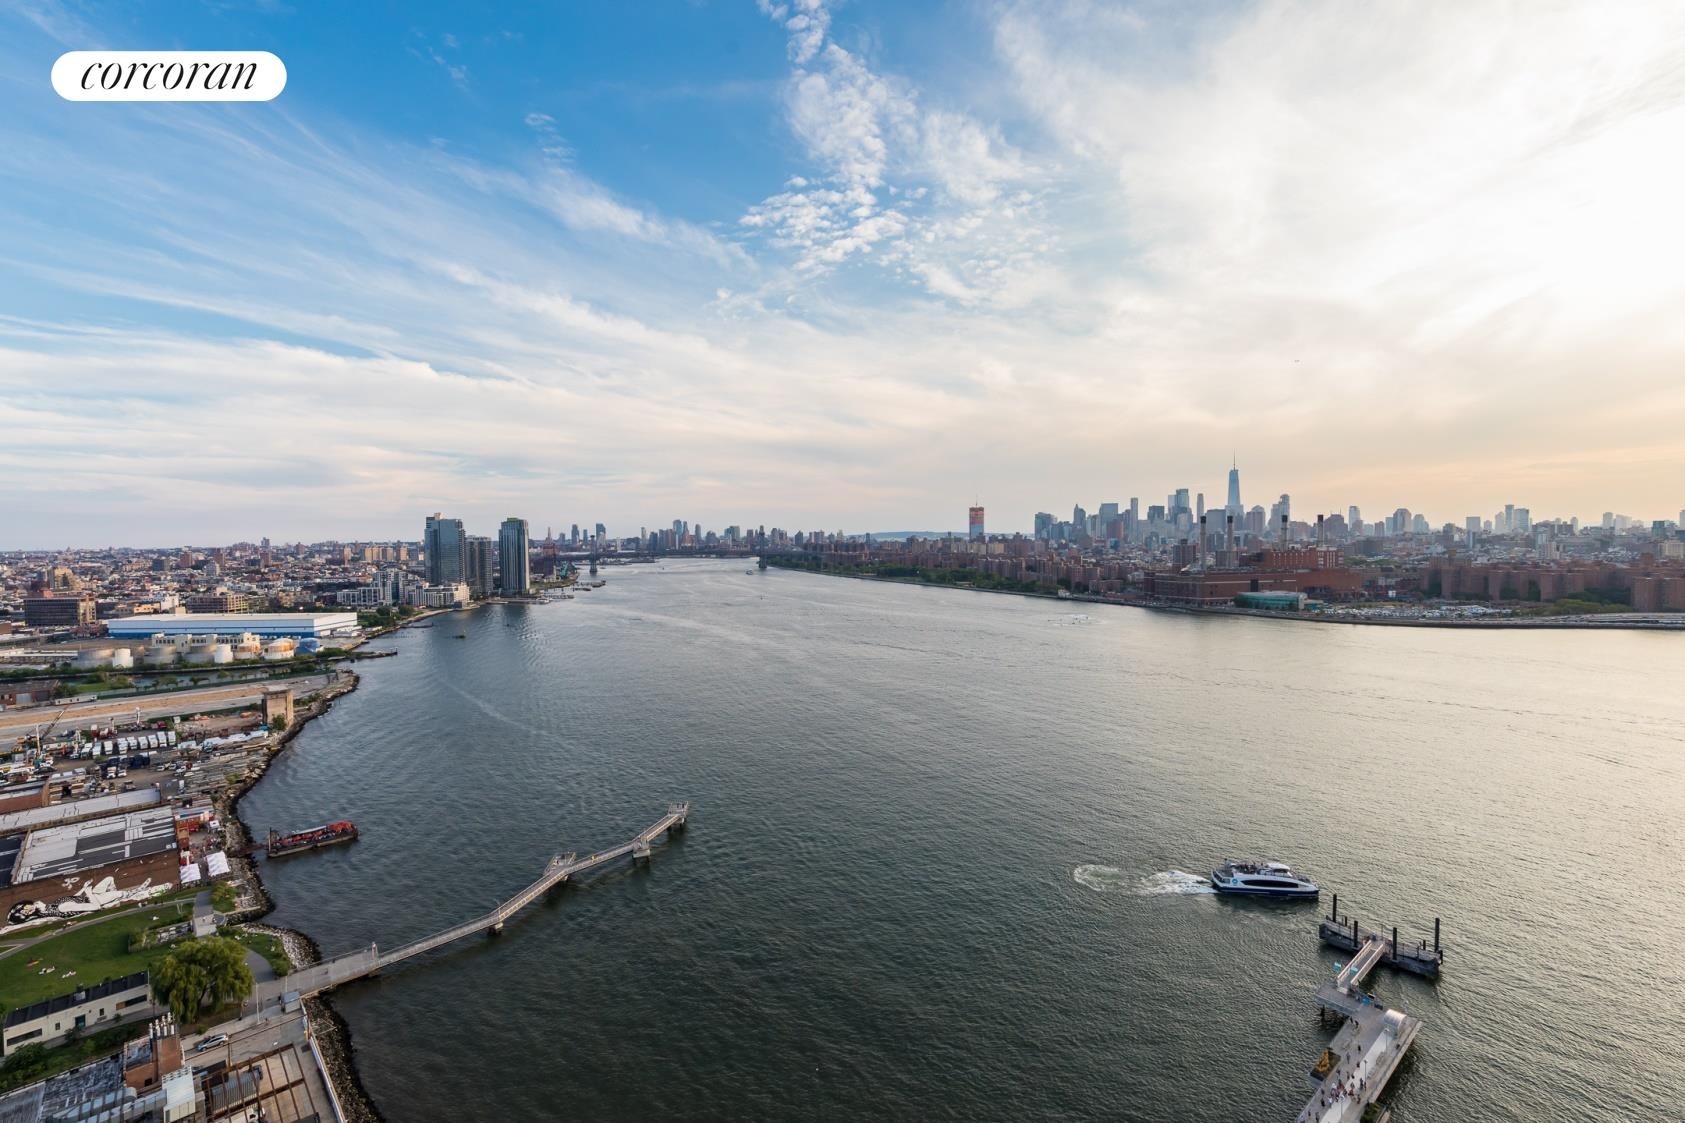 Condominium for Sale at The Greenpoint, 21 India Street 36-F 21 India Street Brooklyn, New York 11222 United States